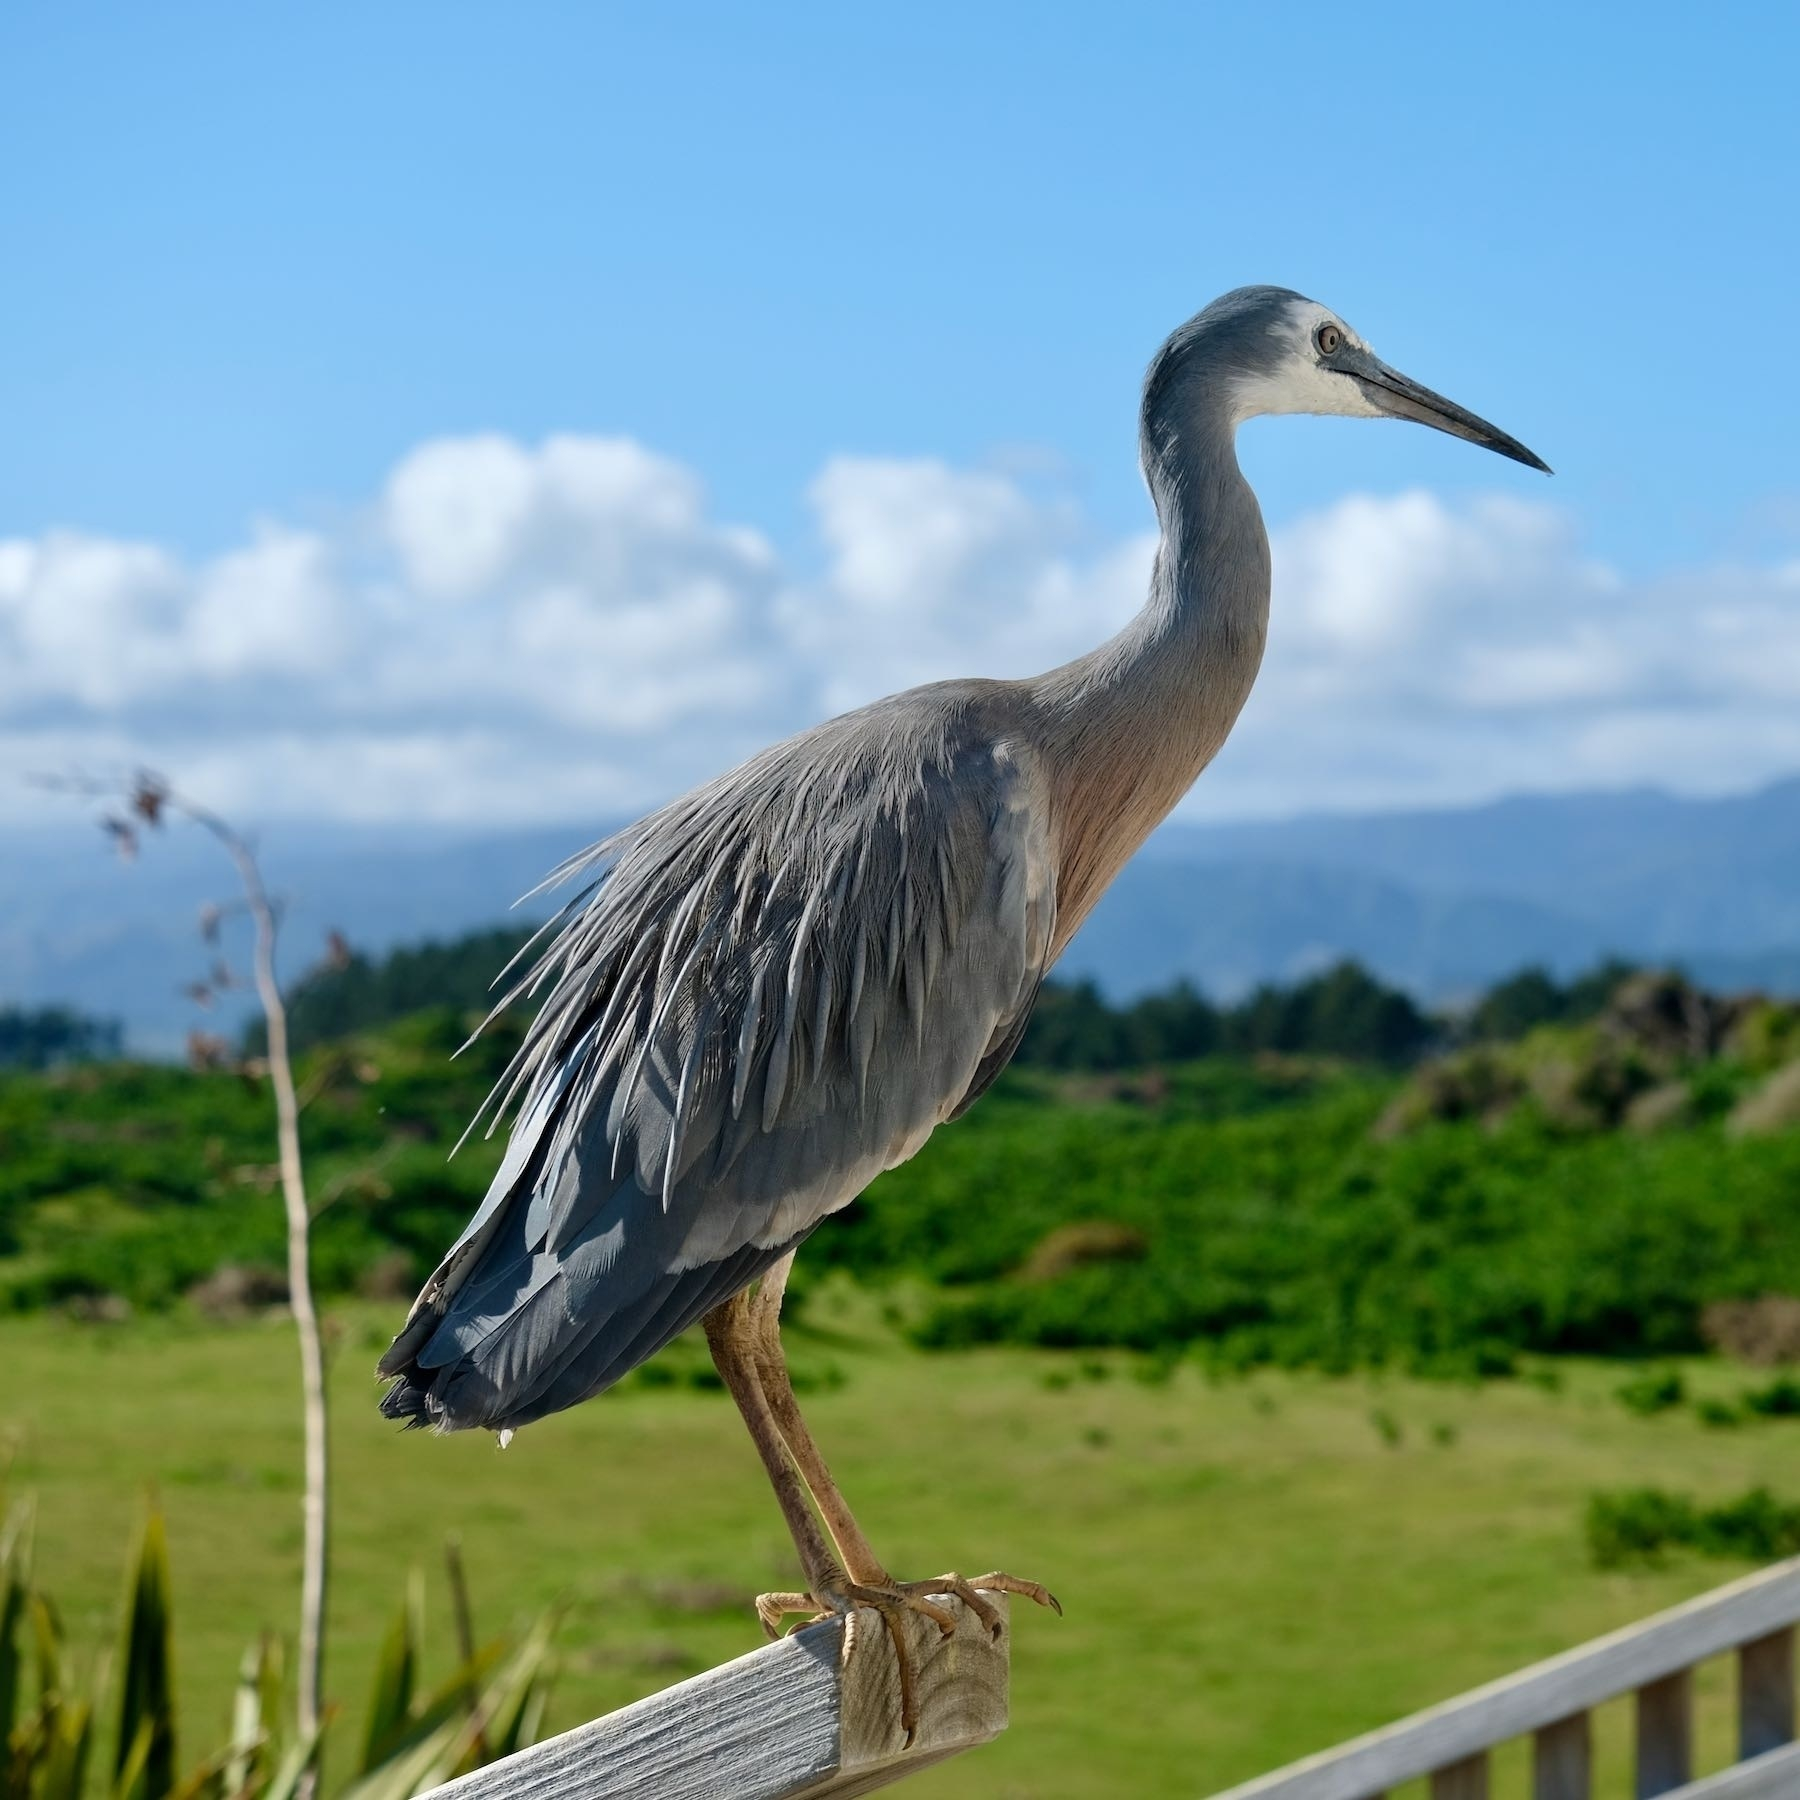 White-faced heron on a post with sky behind.